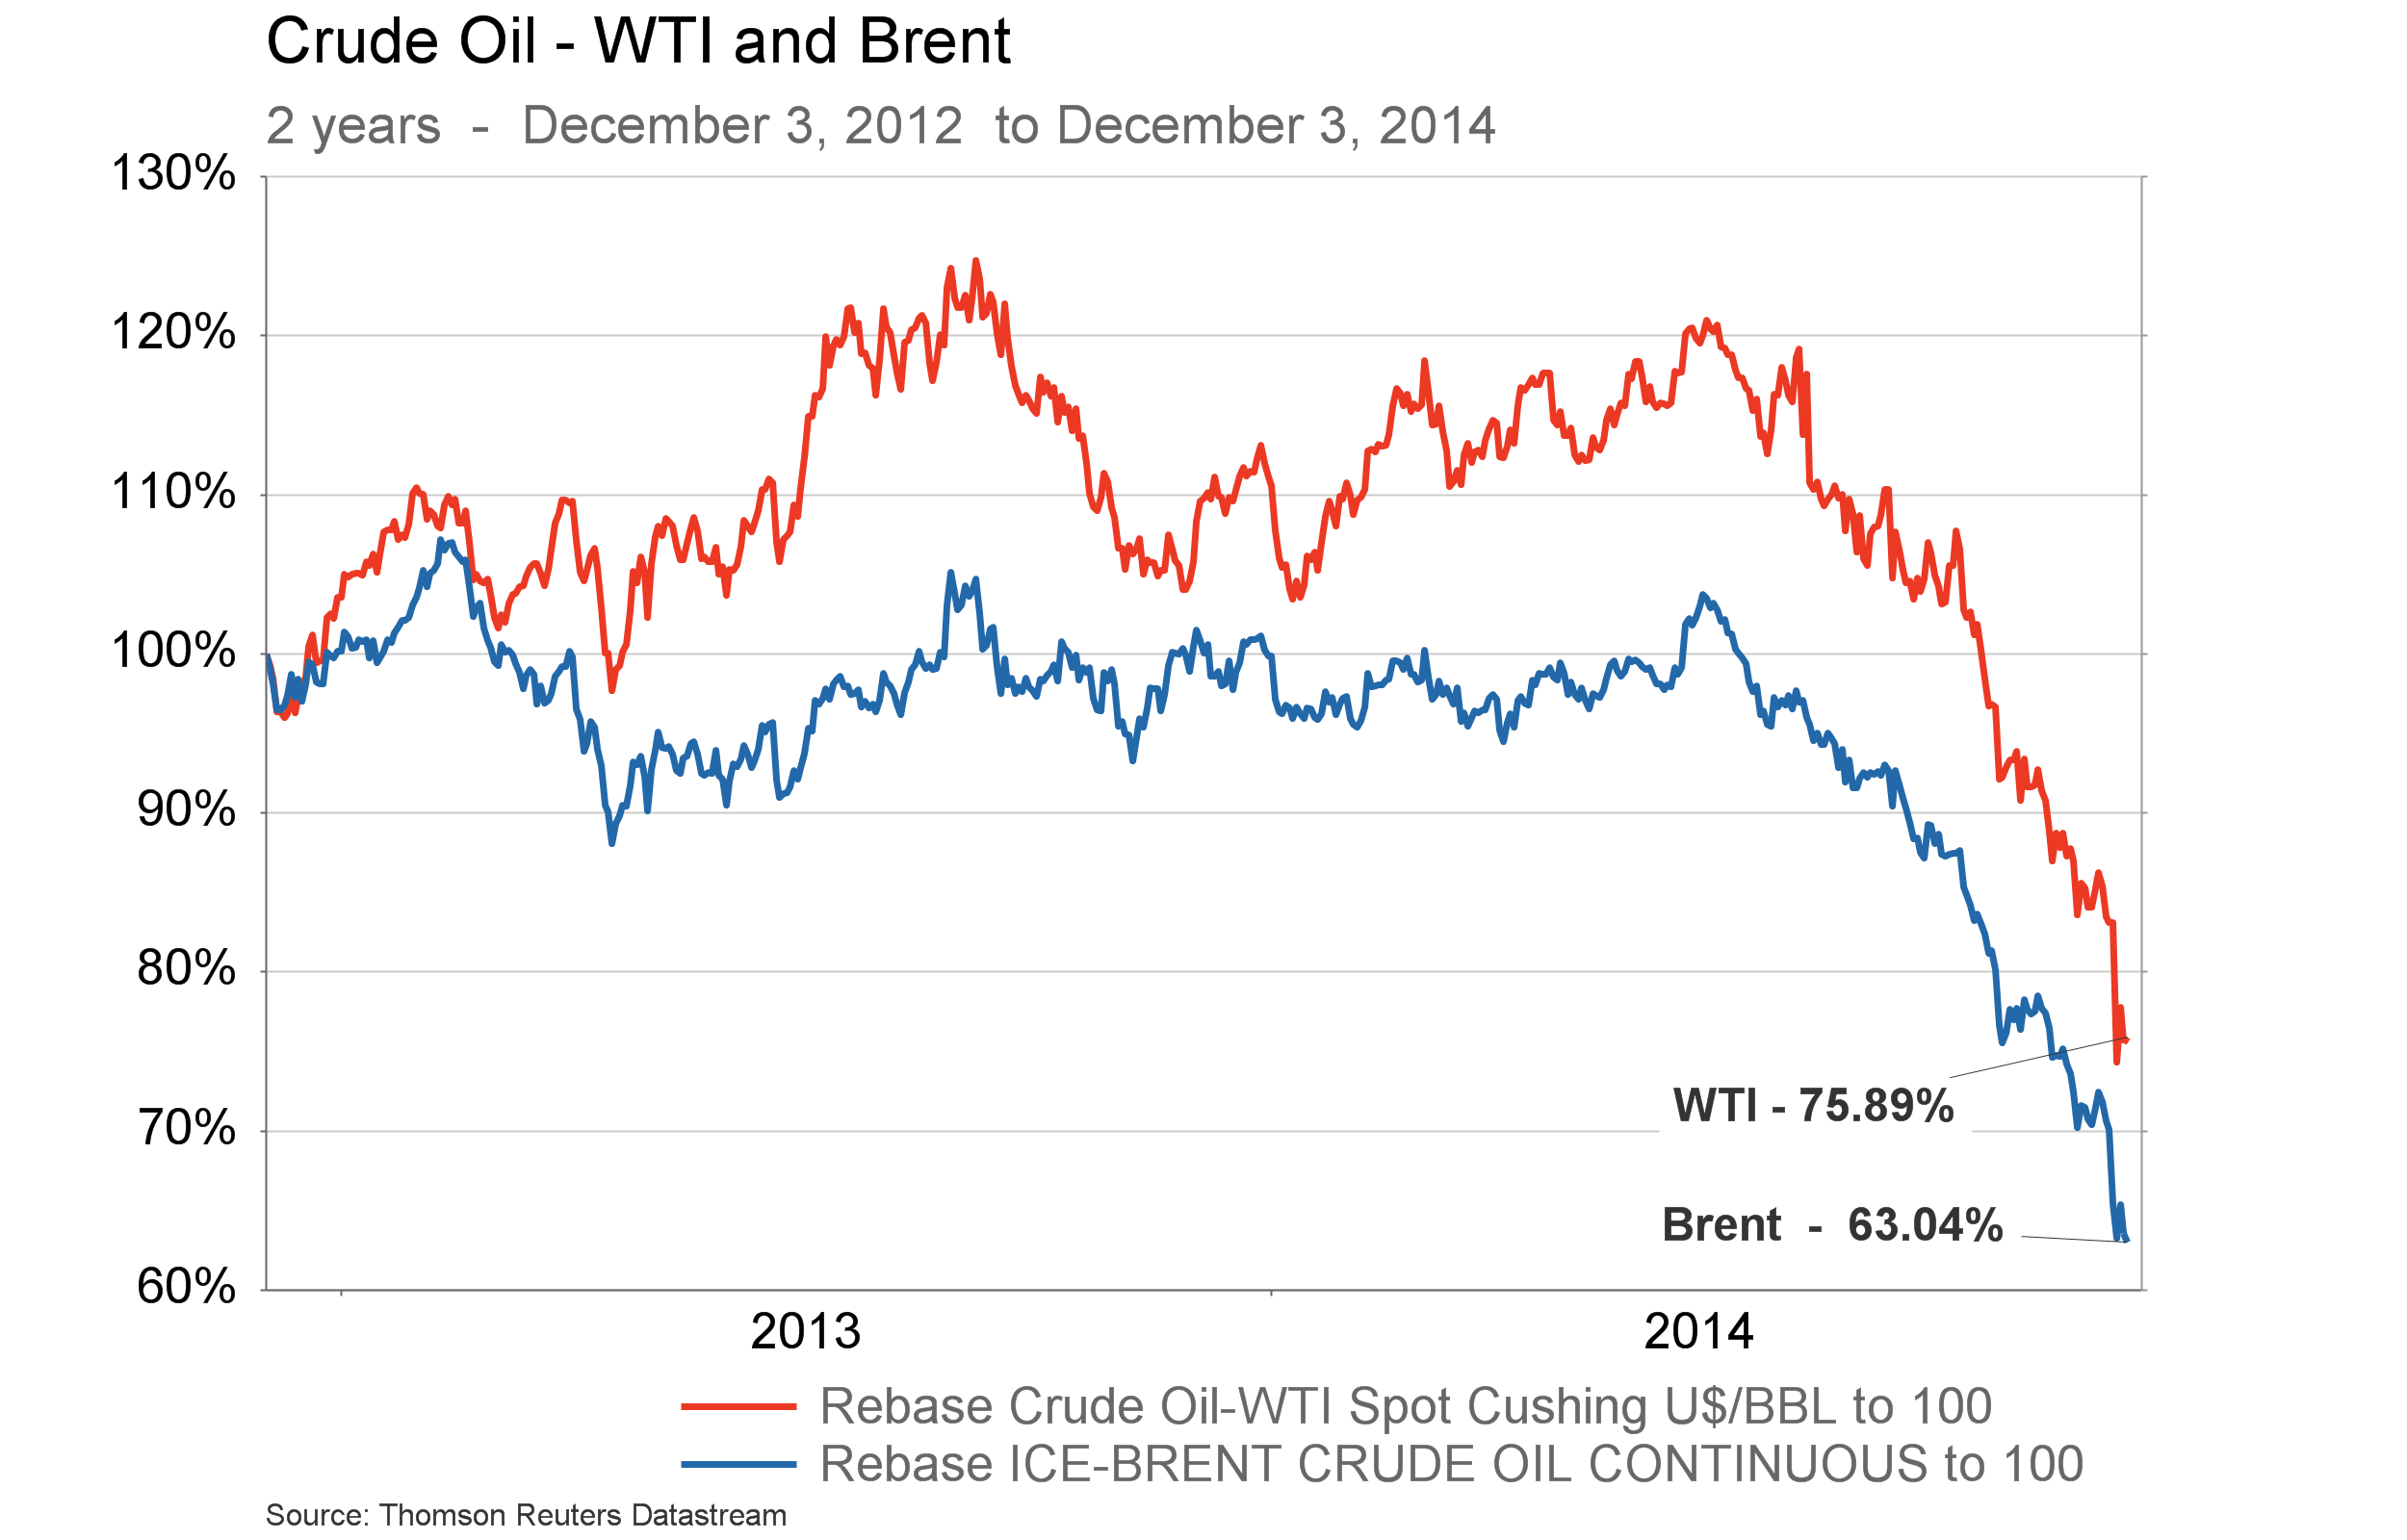 Dec. 5, 2014 Call - chart 2 - WTI and Brent 2 years